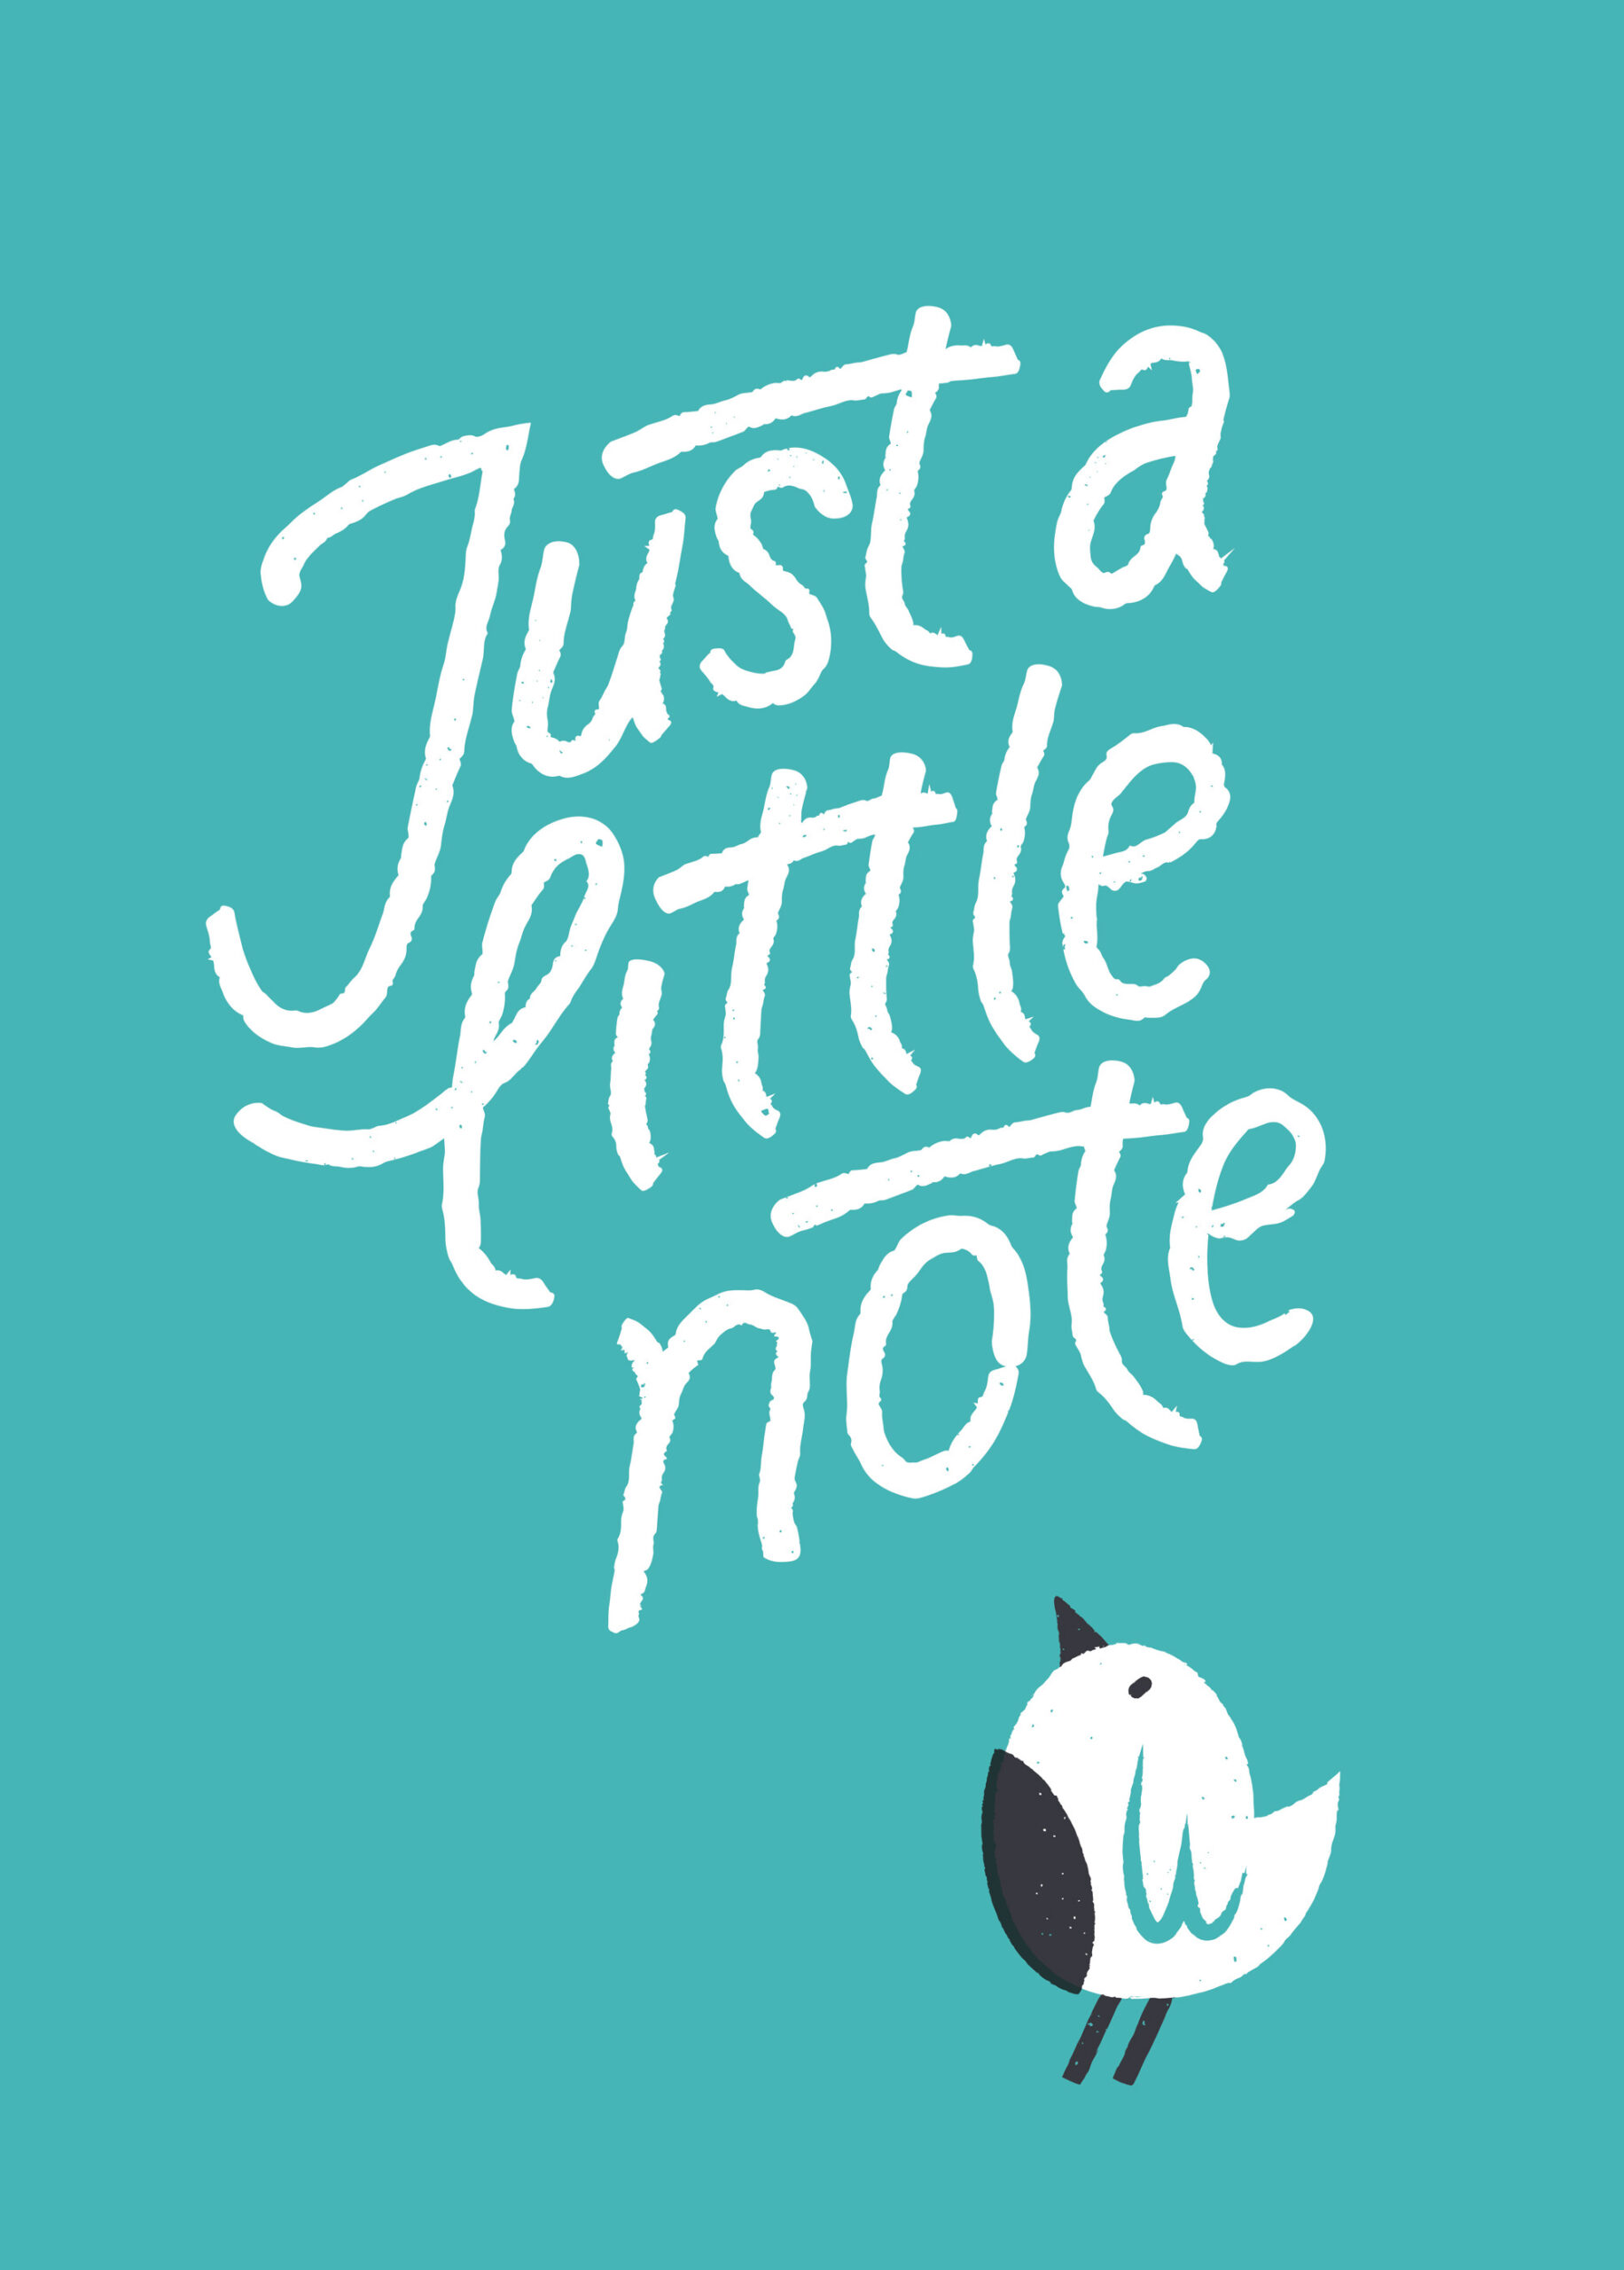 just-a-little-note-james-gibbs